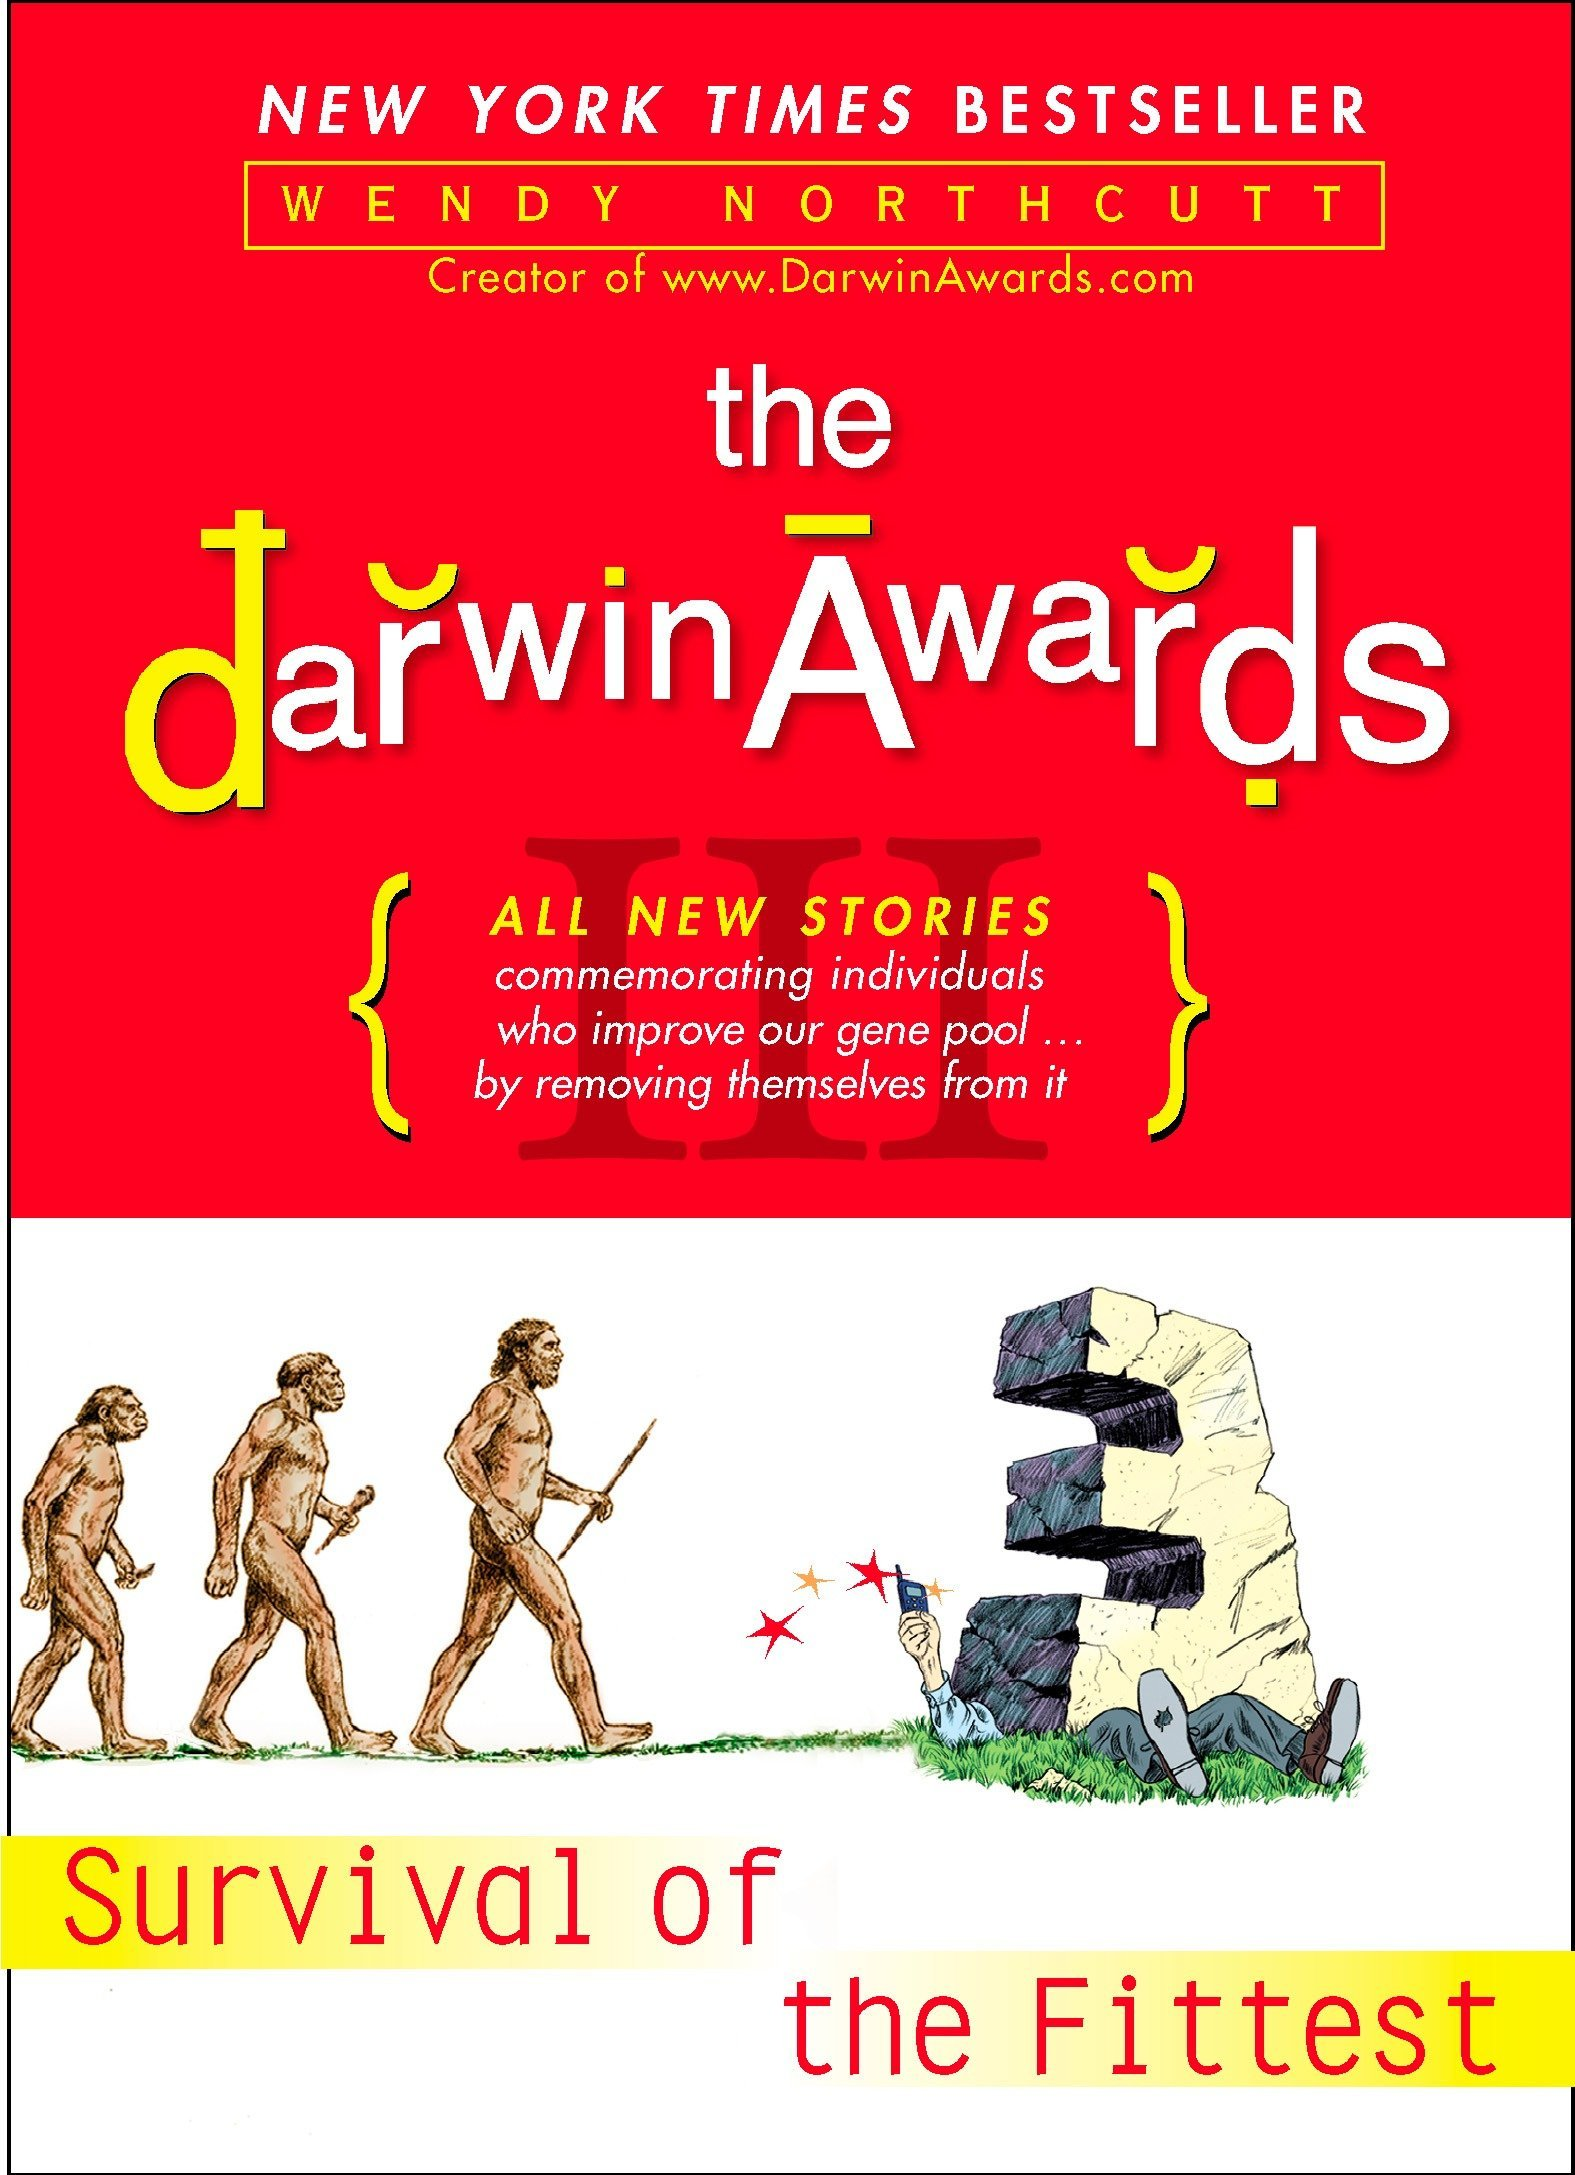 Science Essay Ideas The Darwin Awards Iii Survival Of The Fittest Wendy Northcutt   Amazoncom Books Gender Equality Essay Paper also Science And Society Essay The Darwin Awards Iii Survival Of The Fittest Wendy Northcutt  What Is The Thesis Statement In The Essay